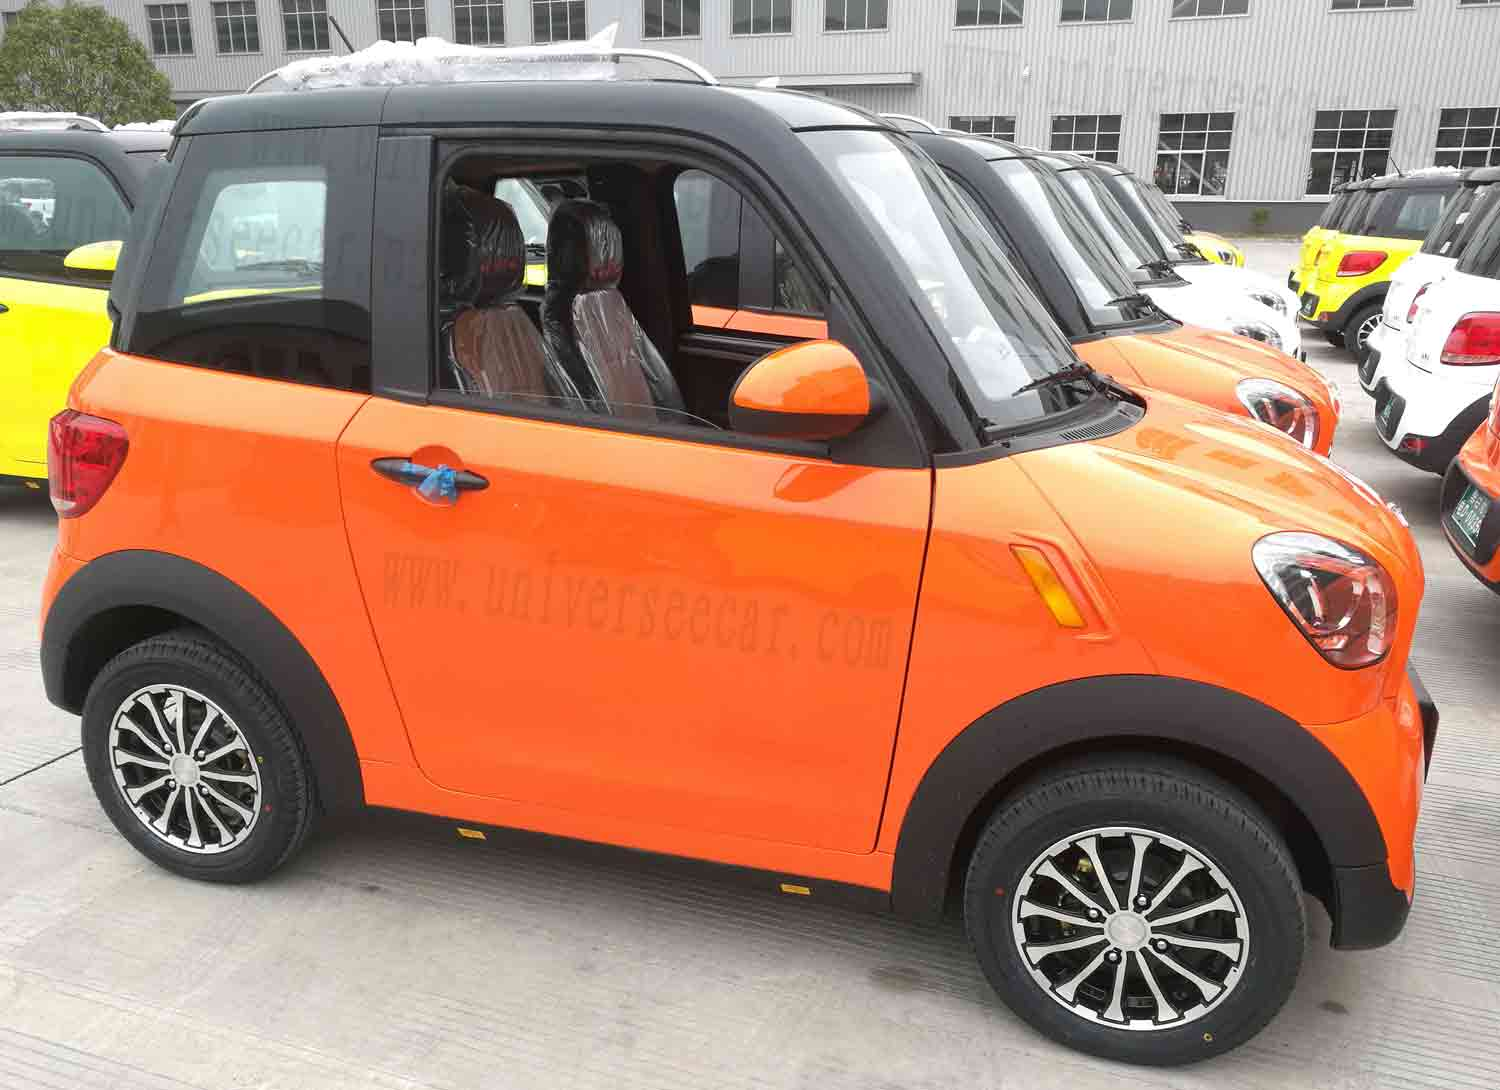 7 Seater Electric Car Ce L7e 2 Seat Mini Ev Electric 4 Wheels Batterycar